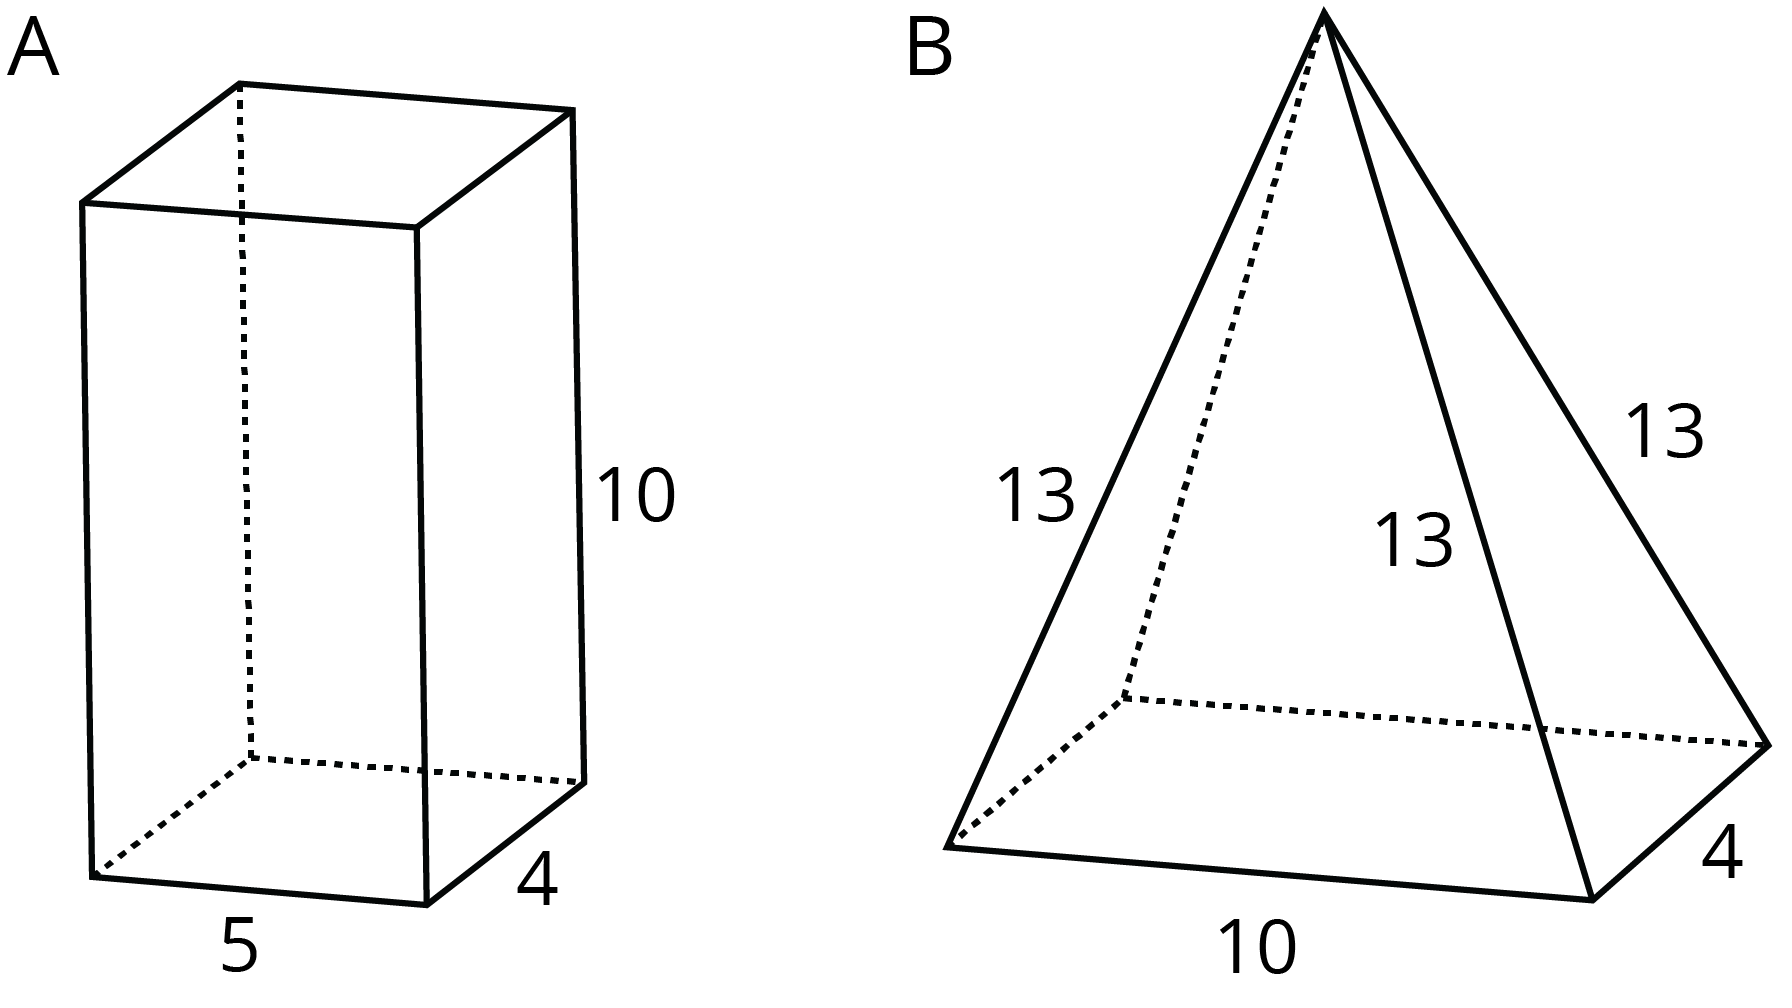 Two polyhedra labeled A and B. Polyhedron A has sides labeled 5, 4, and 10. Polyhedron B has sides labeled 4, 10, 13, 13, and 13.